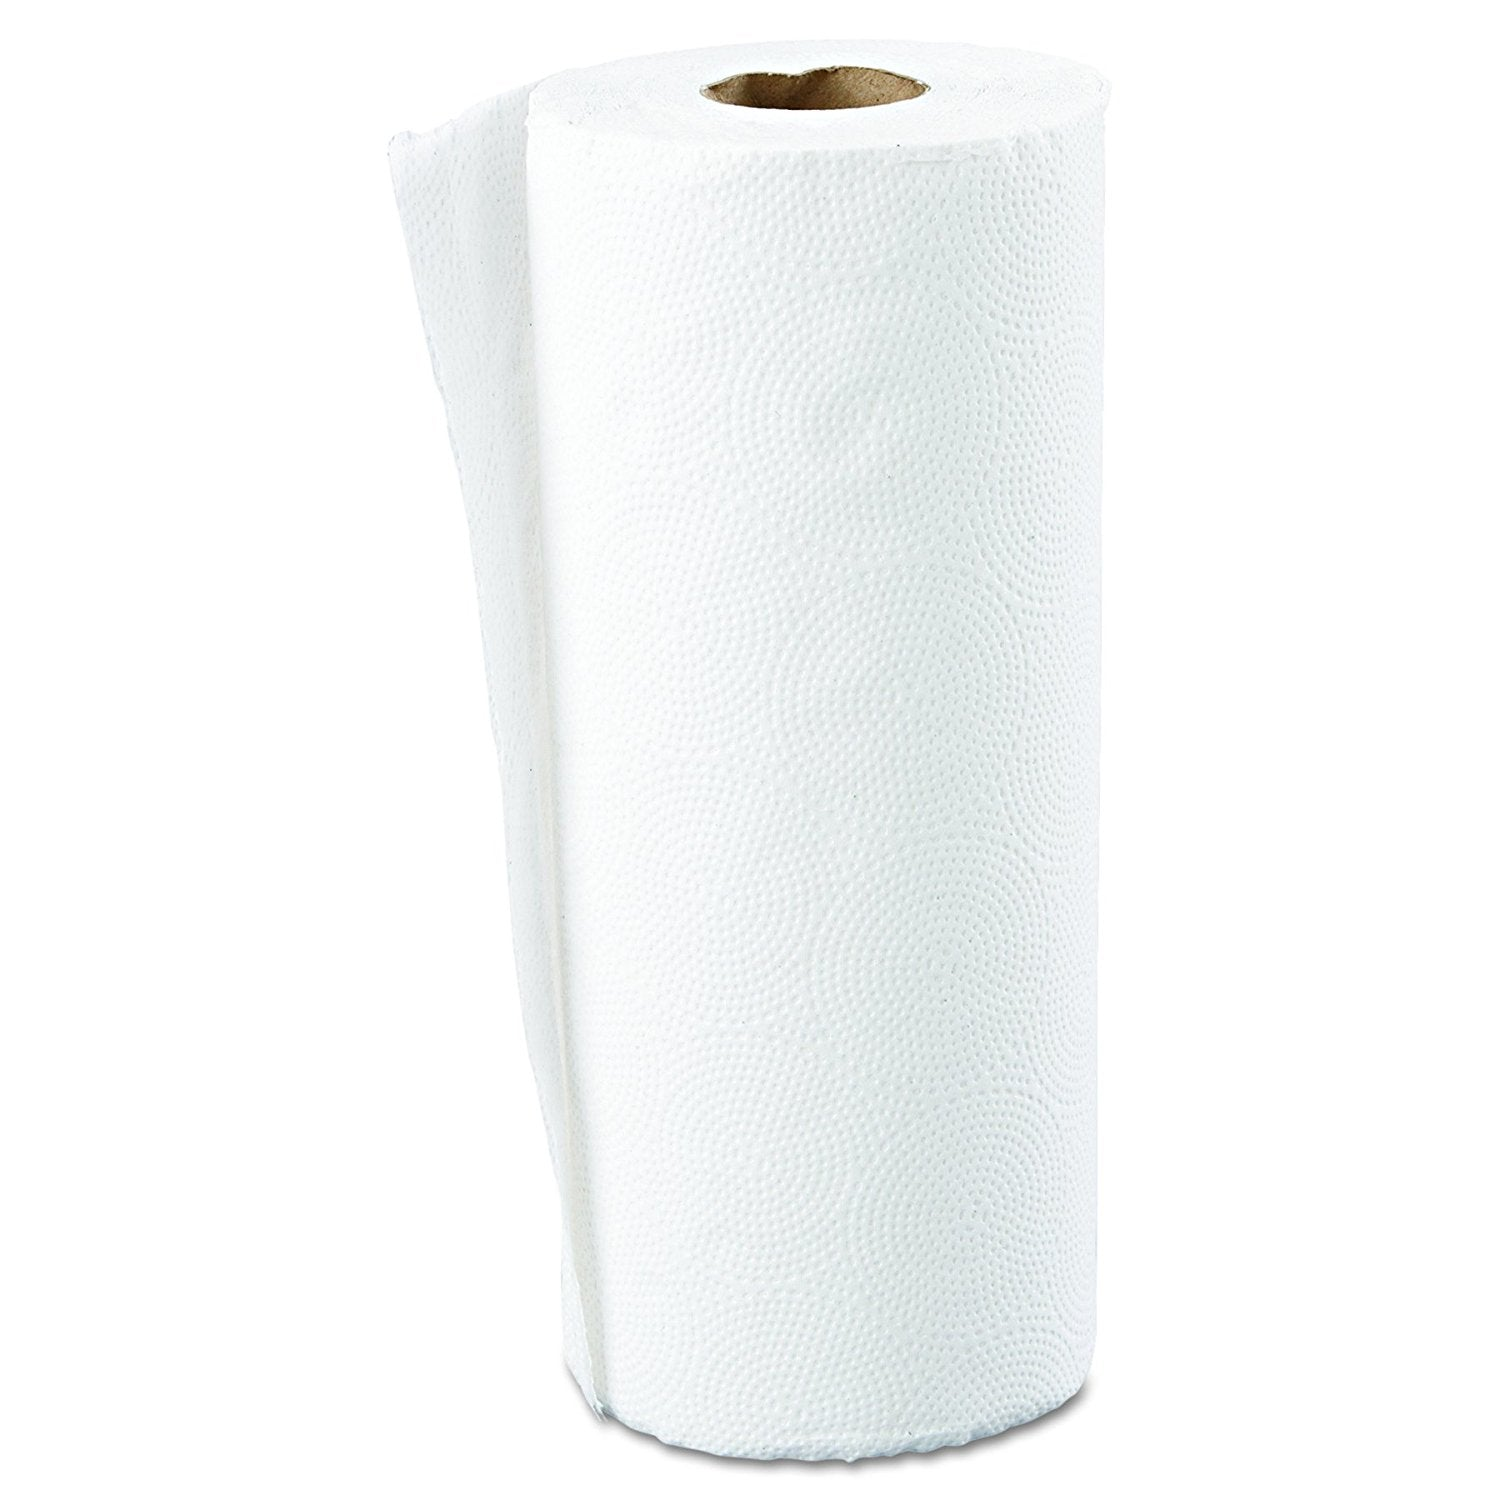 Paper towel roll - 2ply (56 sheets) - i-Spa